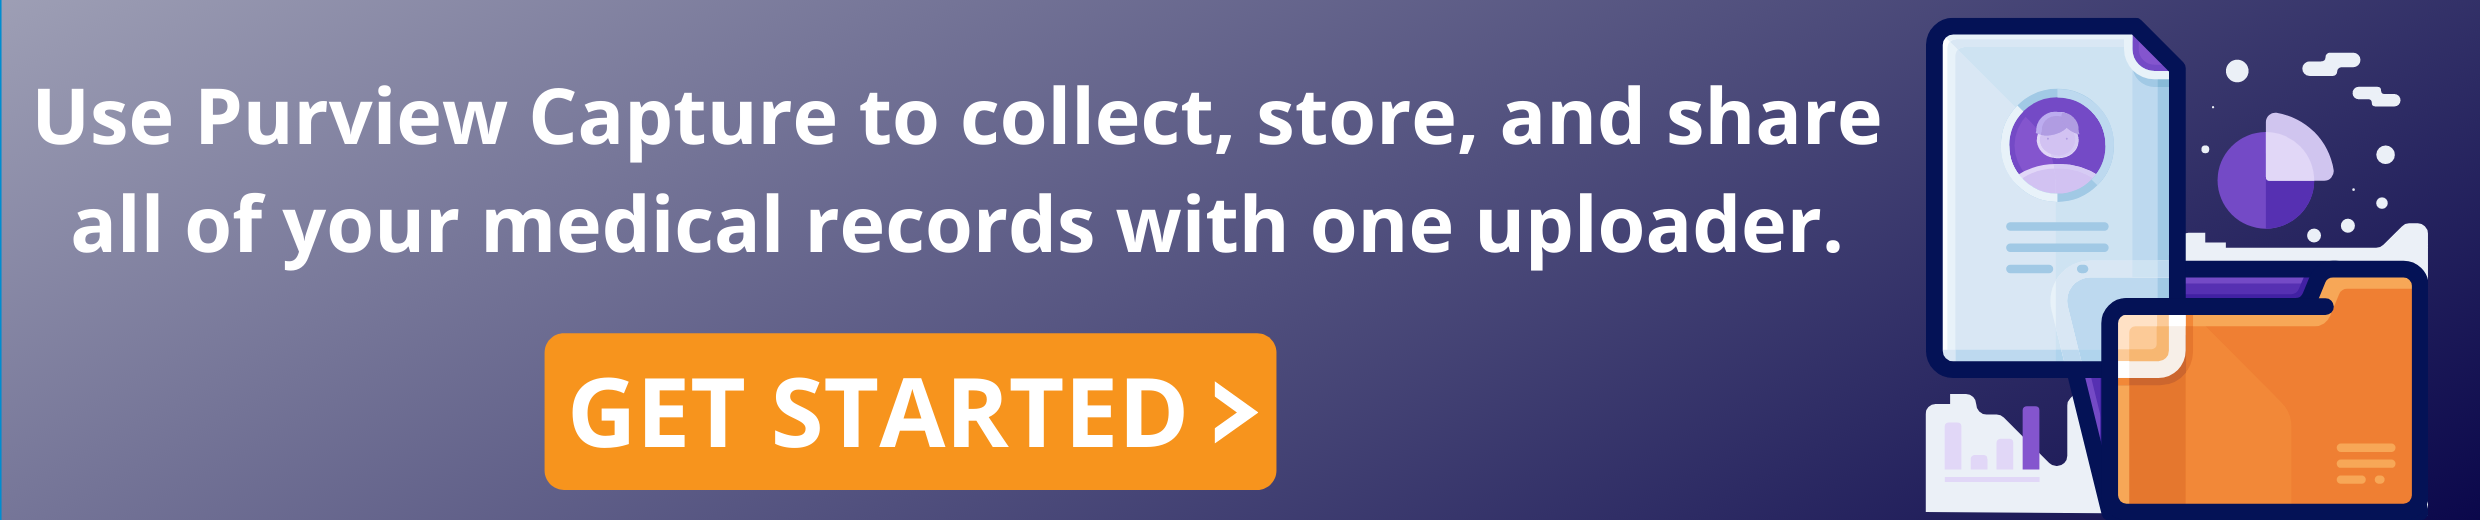 COLLECT STORE AND SHARE MEDICAL RECORDS